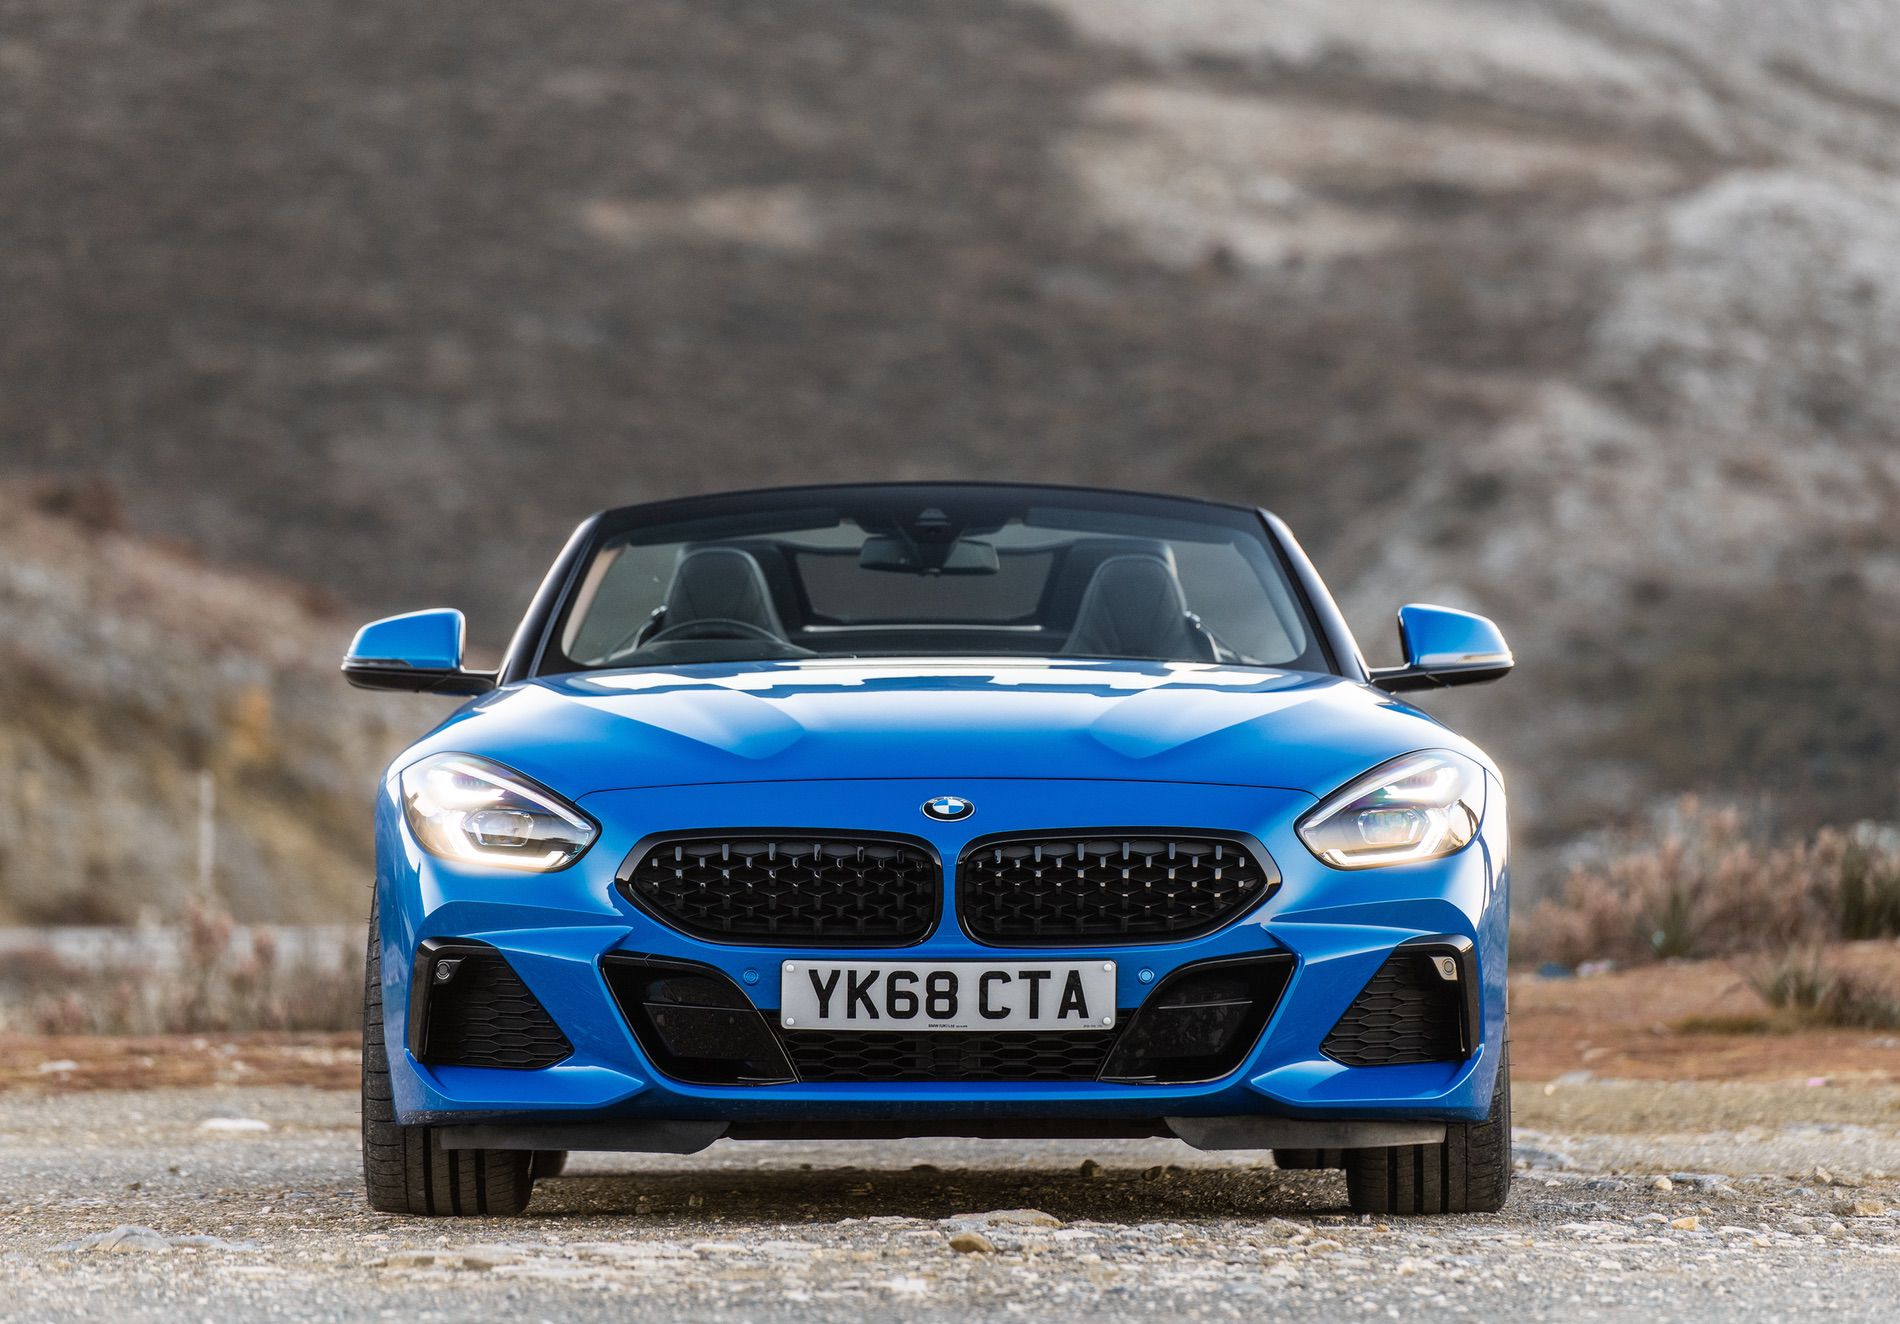 Photoshoot With The Bmw Z4 Sdrive20i M Sport Package In